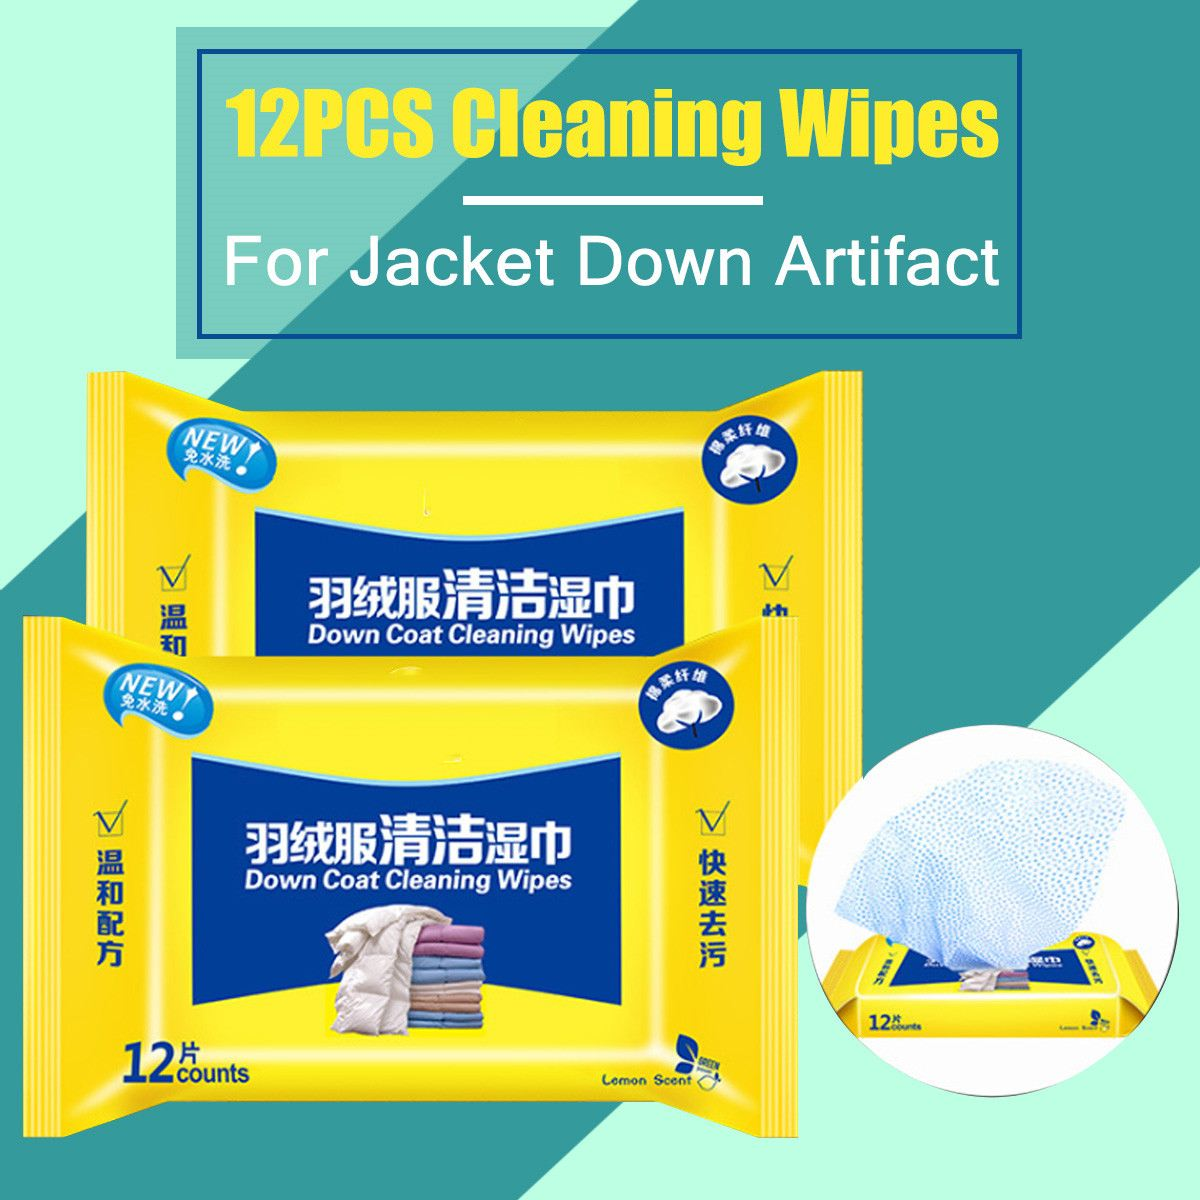 12pcs Artifact Wet Wipe Down Jacket Handbags Cleaning Wipes Disposable Disinfection Swap Pad Travel Portable Cleaning Care